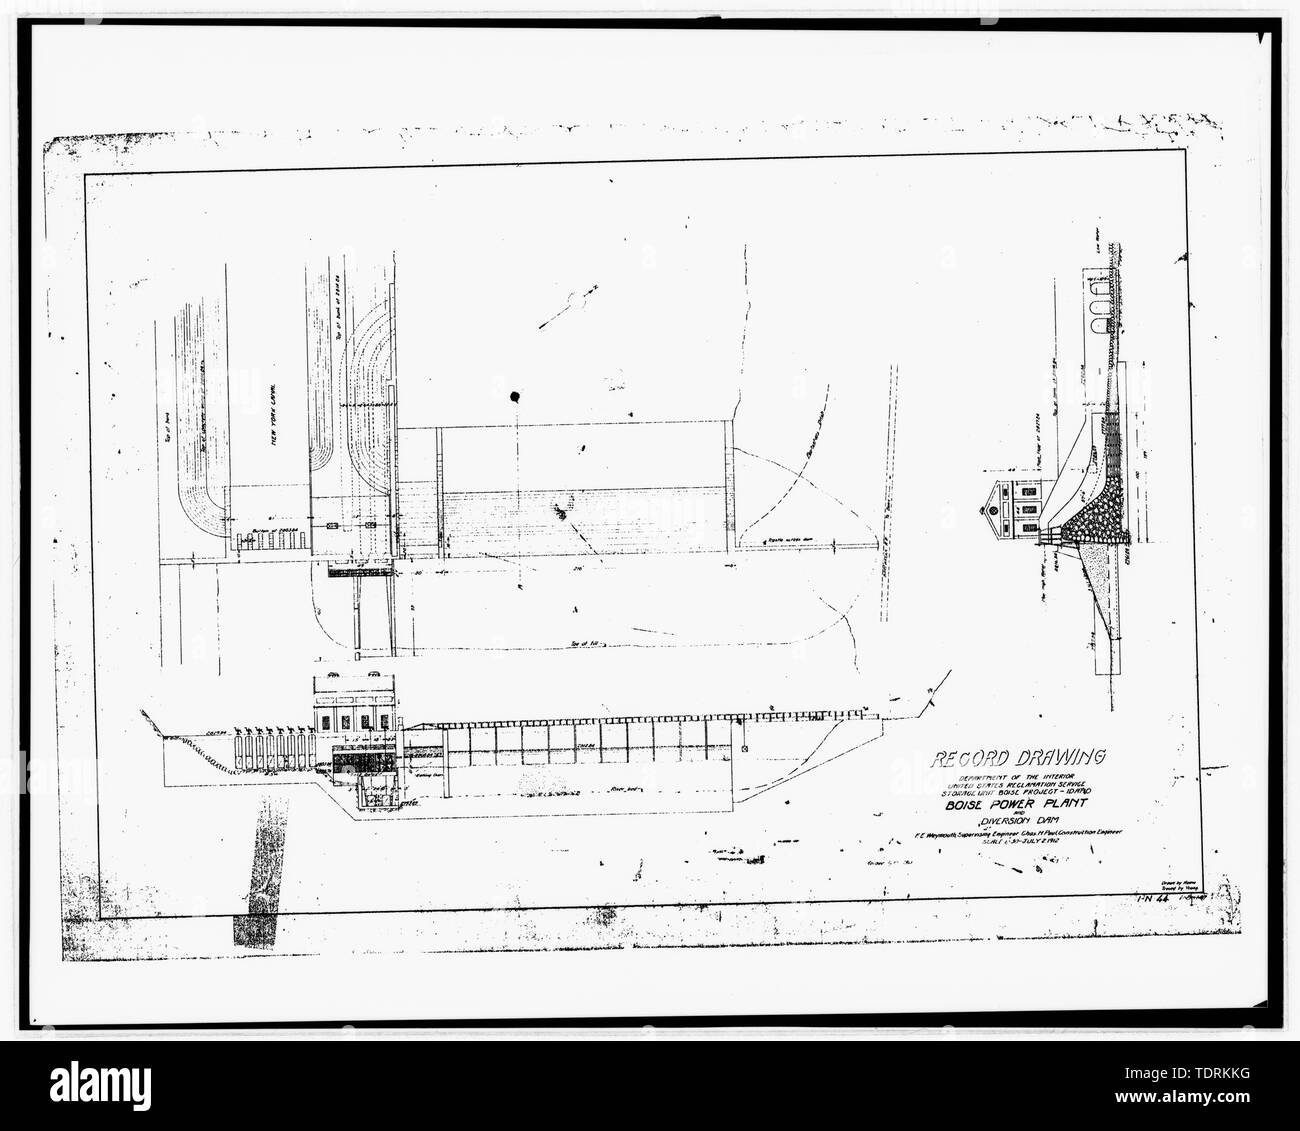 Photographic copy of construction drawings, U S  Reclamation